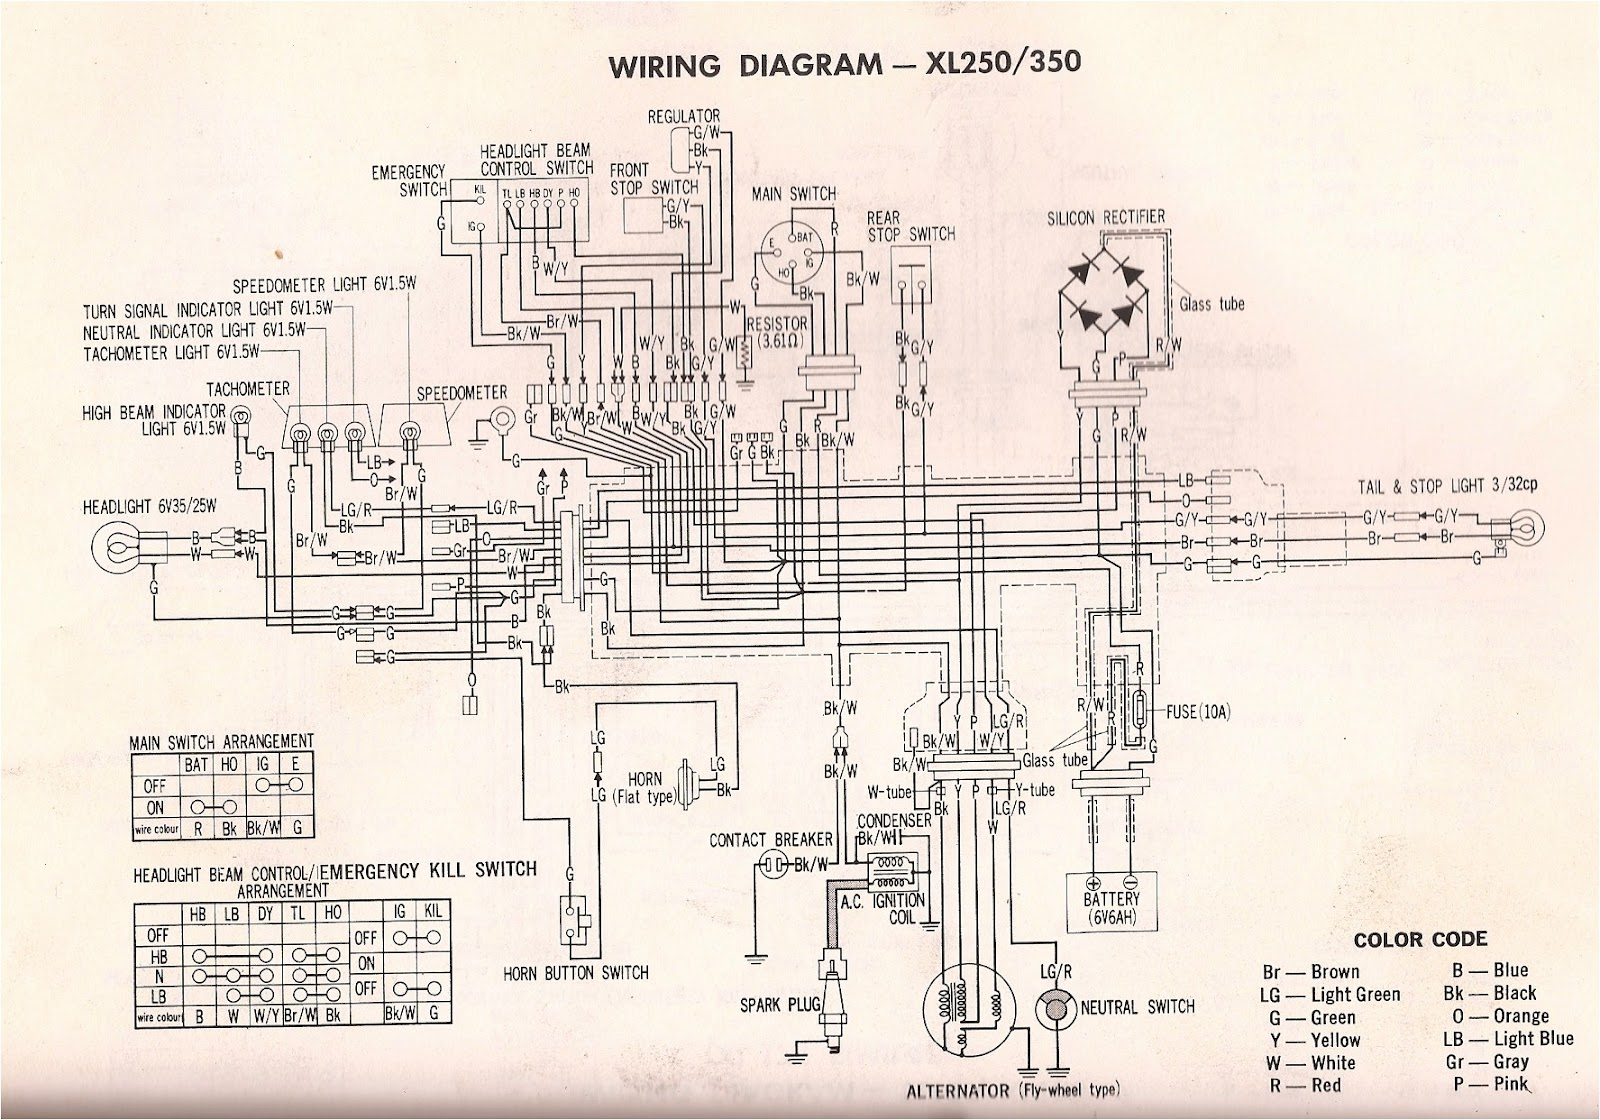 1983 Honda C70 Wiring Diagrams Not Lossing Diagram Ford Mustang Alternator Free Picture Trusted Rh 14 Nl Schoenheitsbrieftaube De Twinstar Trx450r